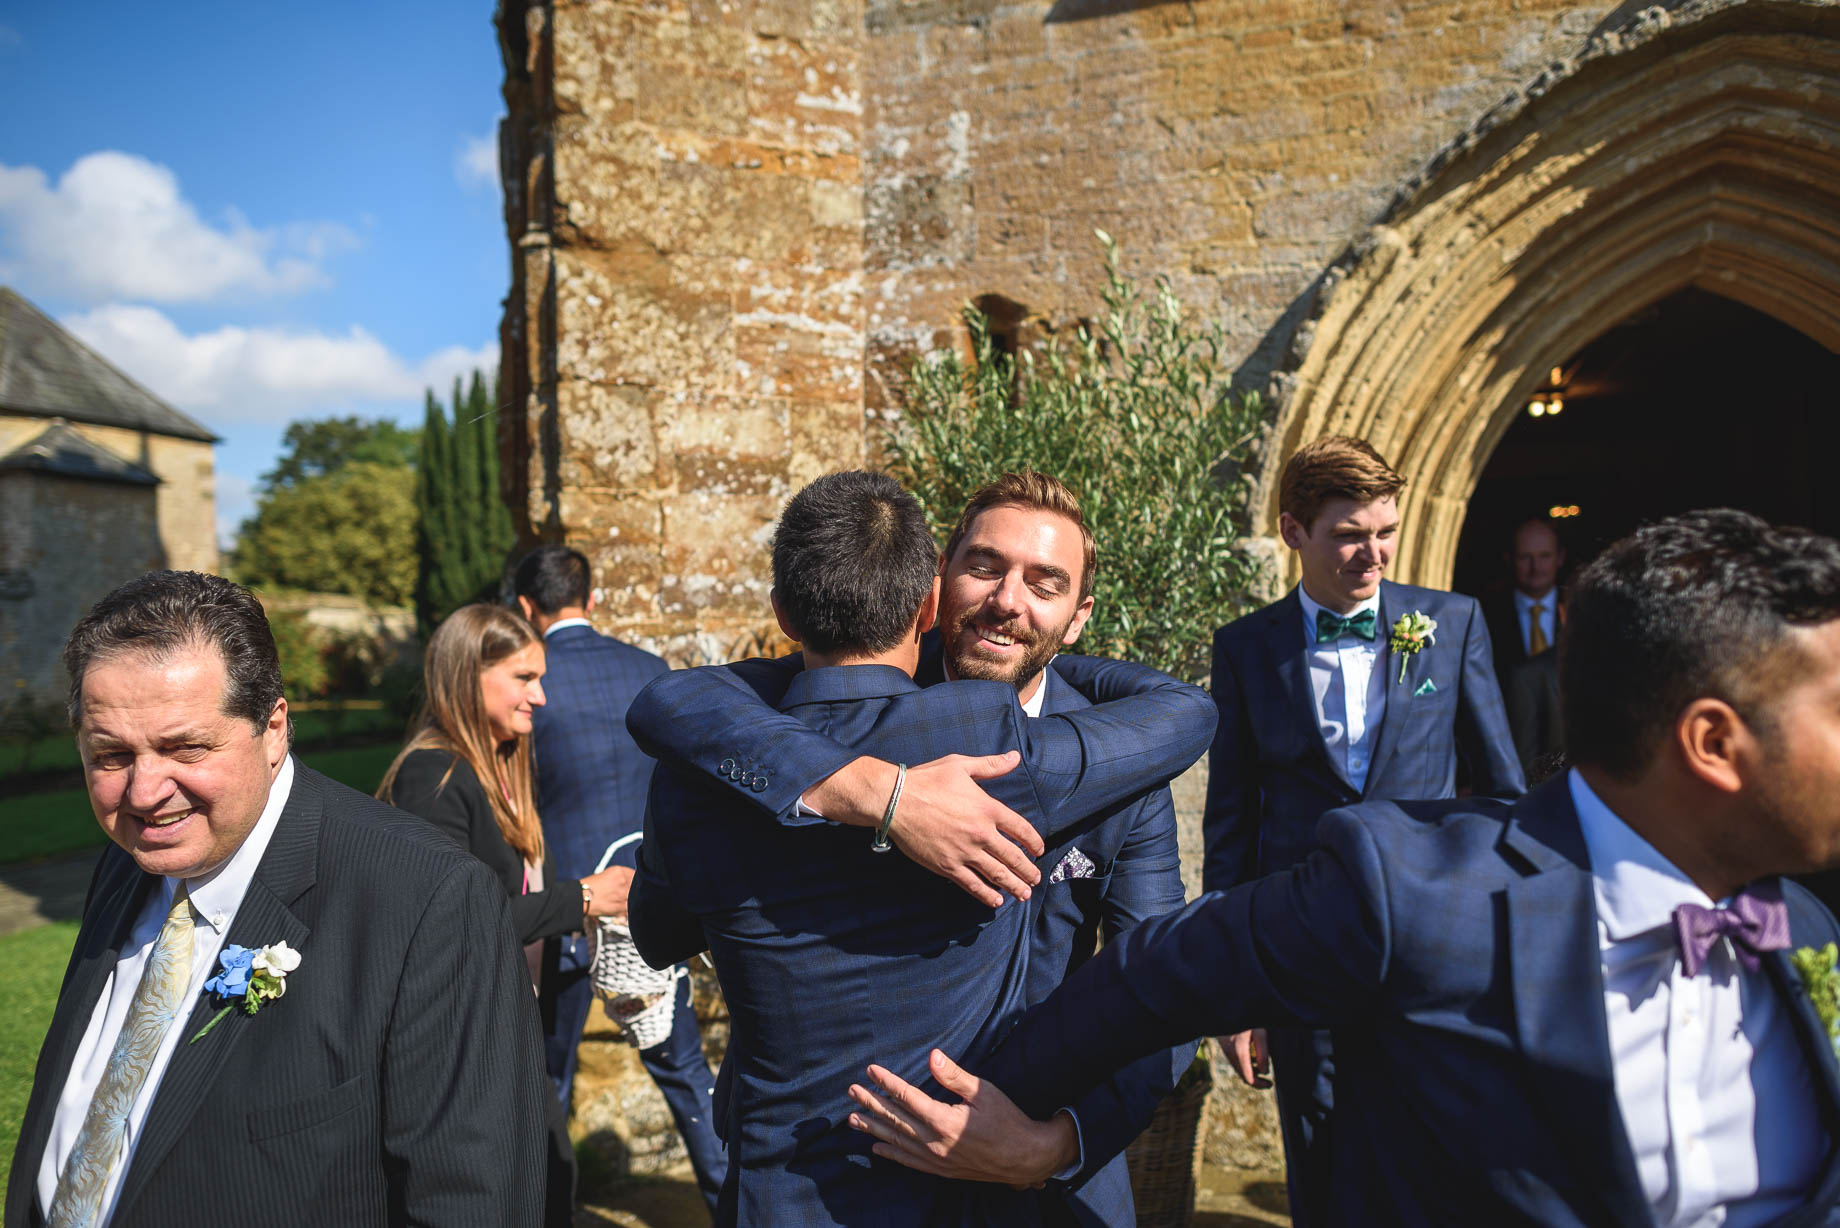 Aynhoe Park wedding photography - Guy Collier - Becky and Nick (109 of 233)